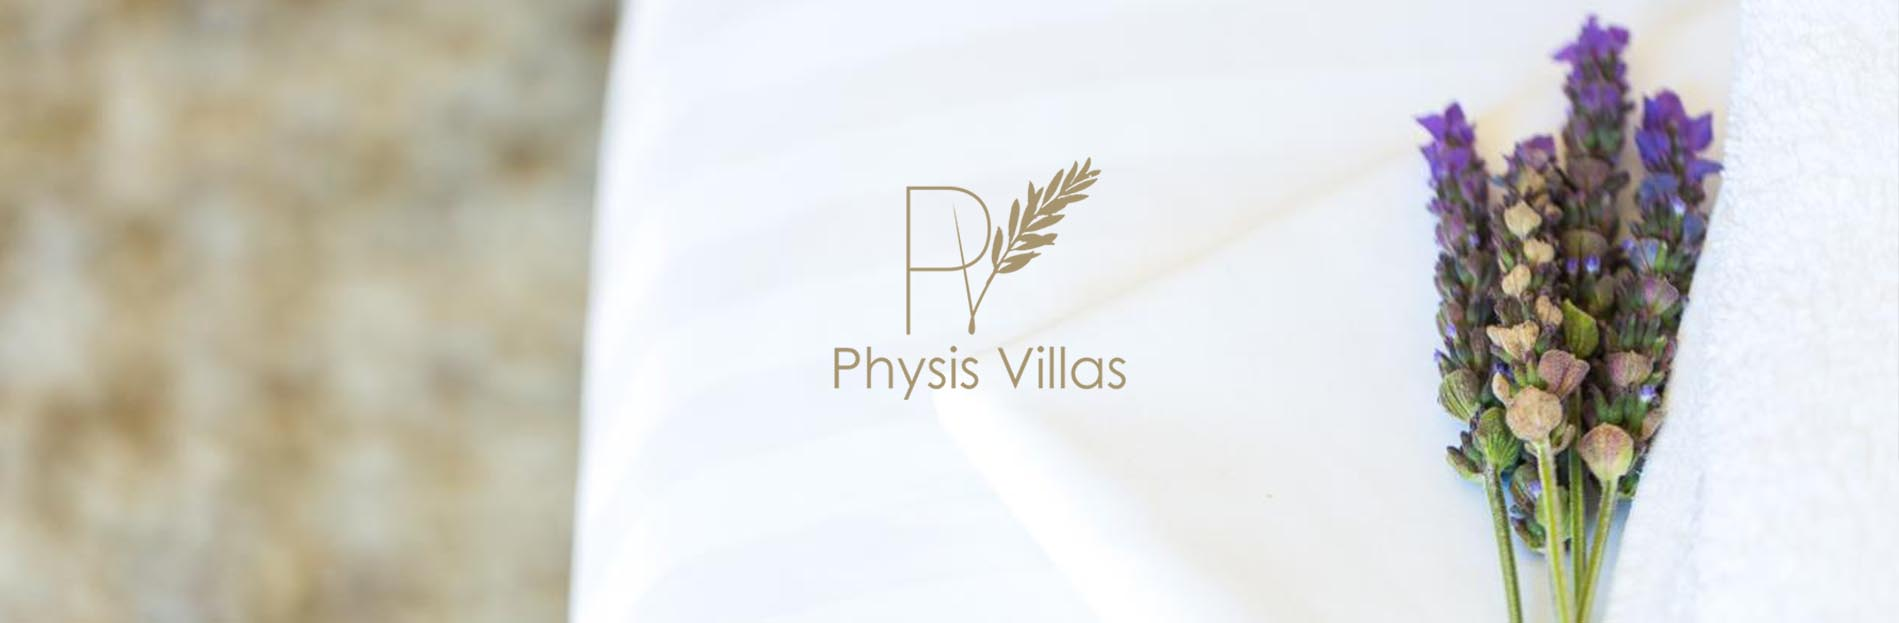 Villa Thalia and Villa Erato are Physis Villas. Contact us for rent a villa in Crete. Physis Villas, Chania, Crete. Villas in Crete with pools